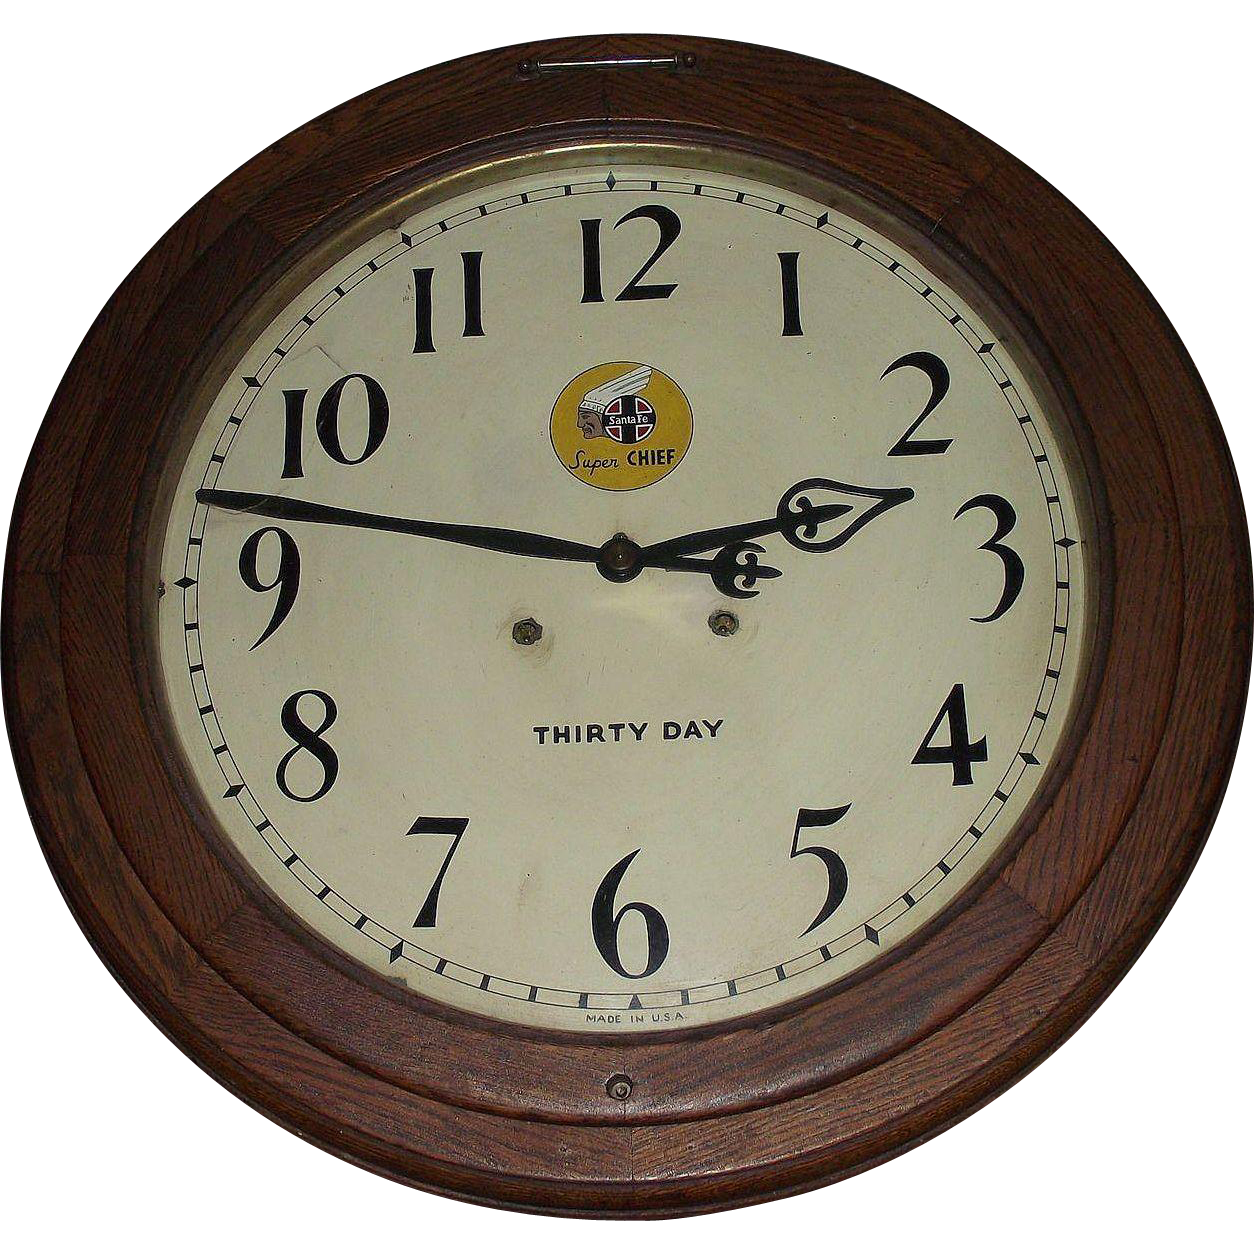 """Santa Fe Super Chief"" painted Dial on a ""Arcade"" Model 30 Day Movement Gallery Clock with 18 inch Dial and 24 inch Solid Oak Case !!! Circa 1916."